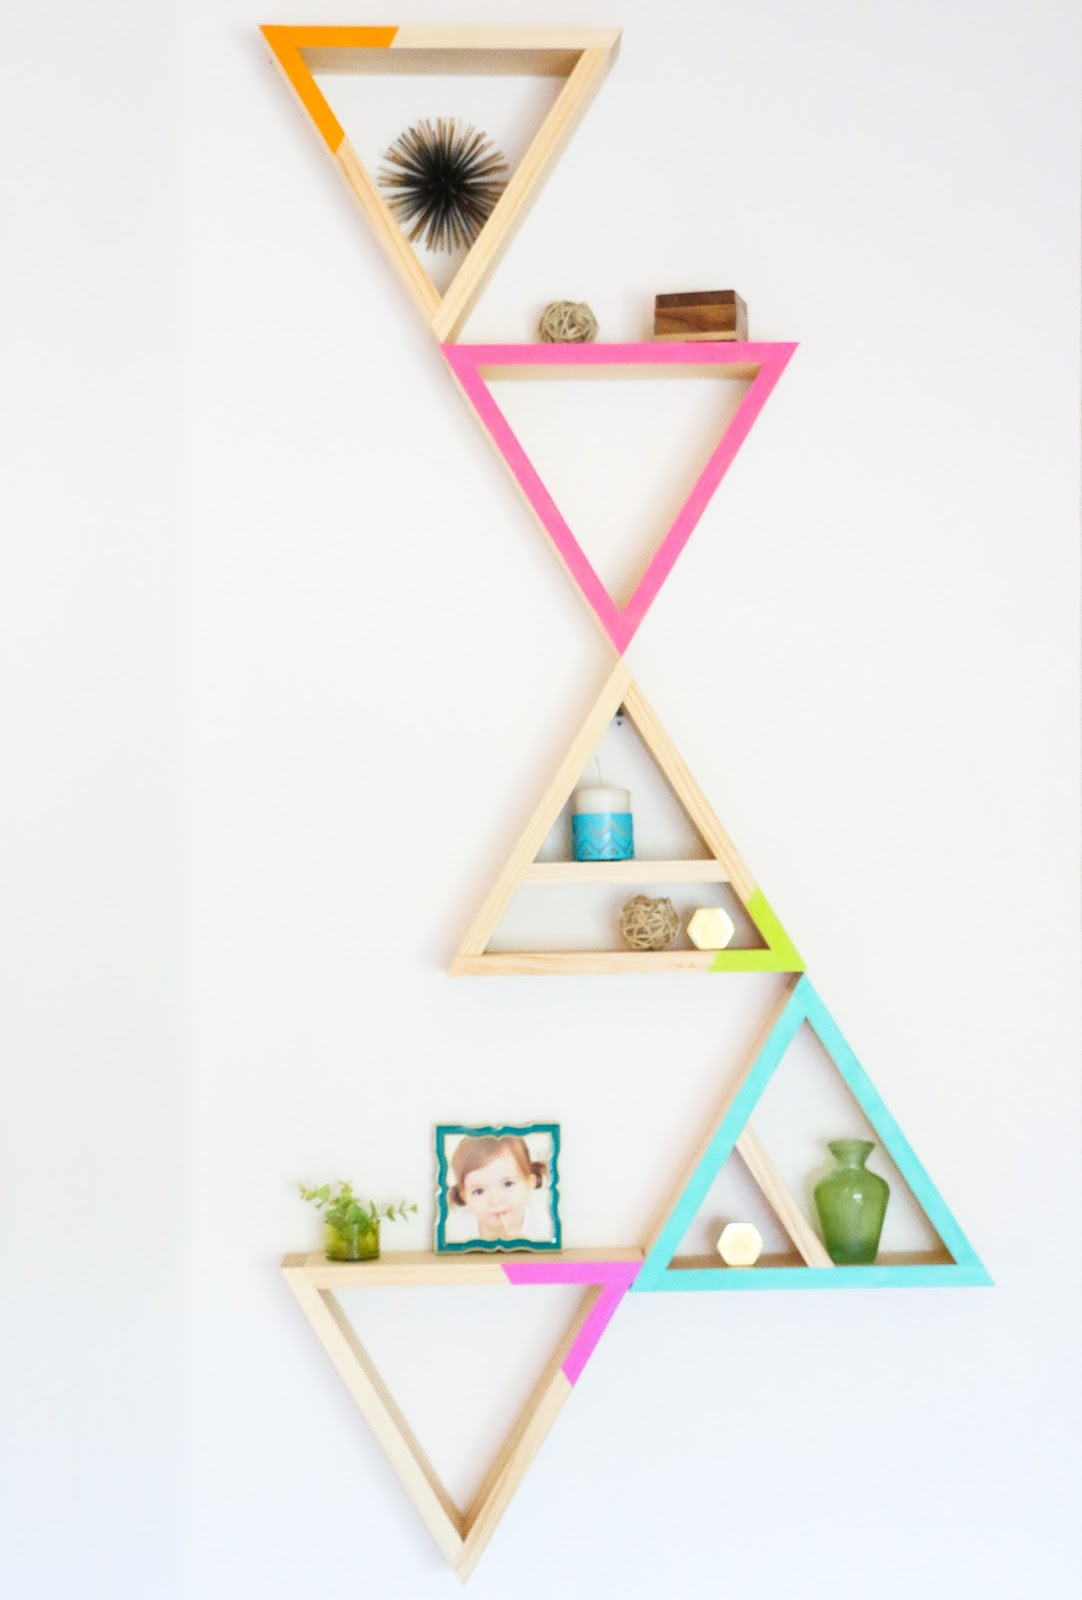 A kailo chic life build it triangle shelves - Triangular bookshelf ...